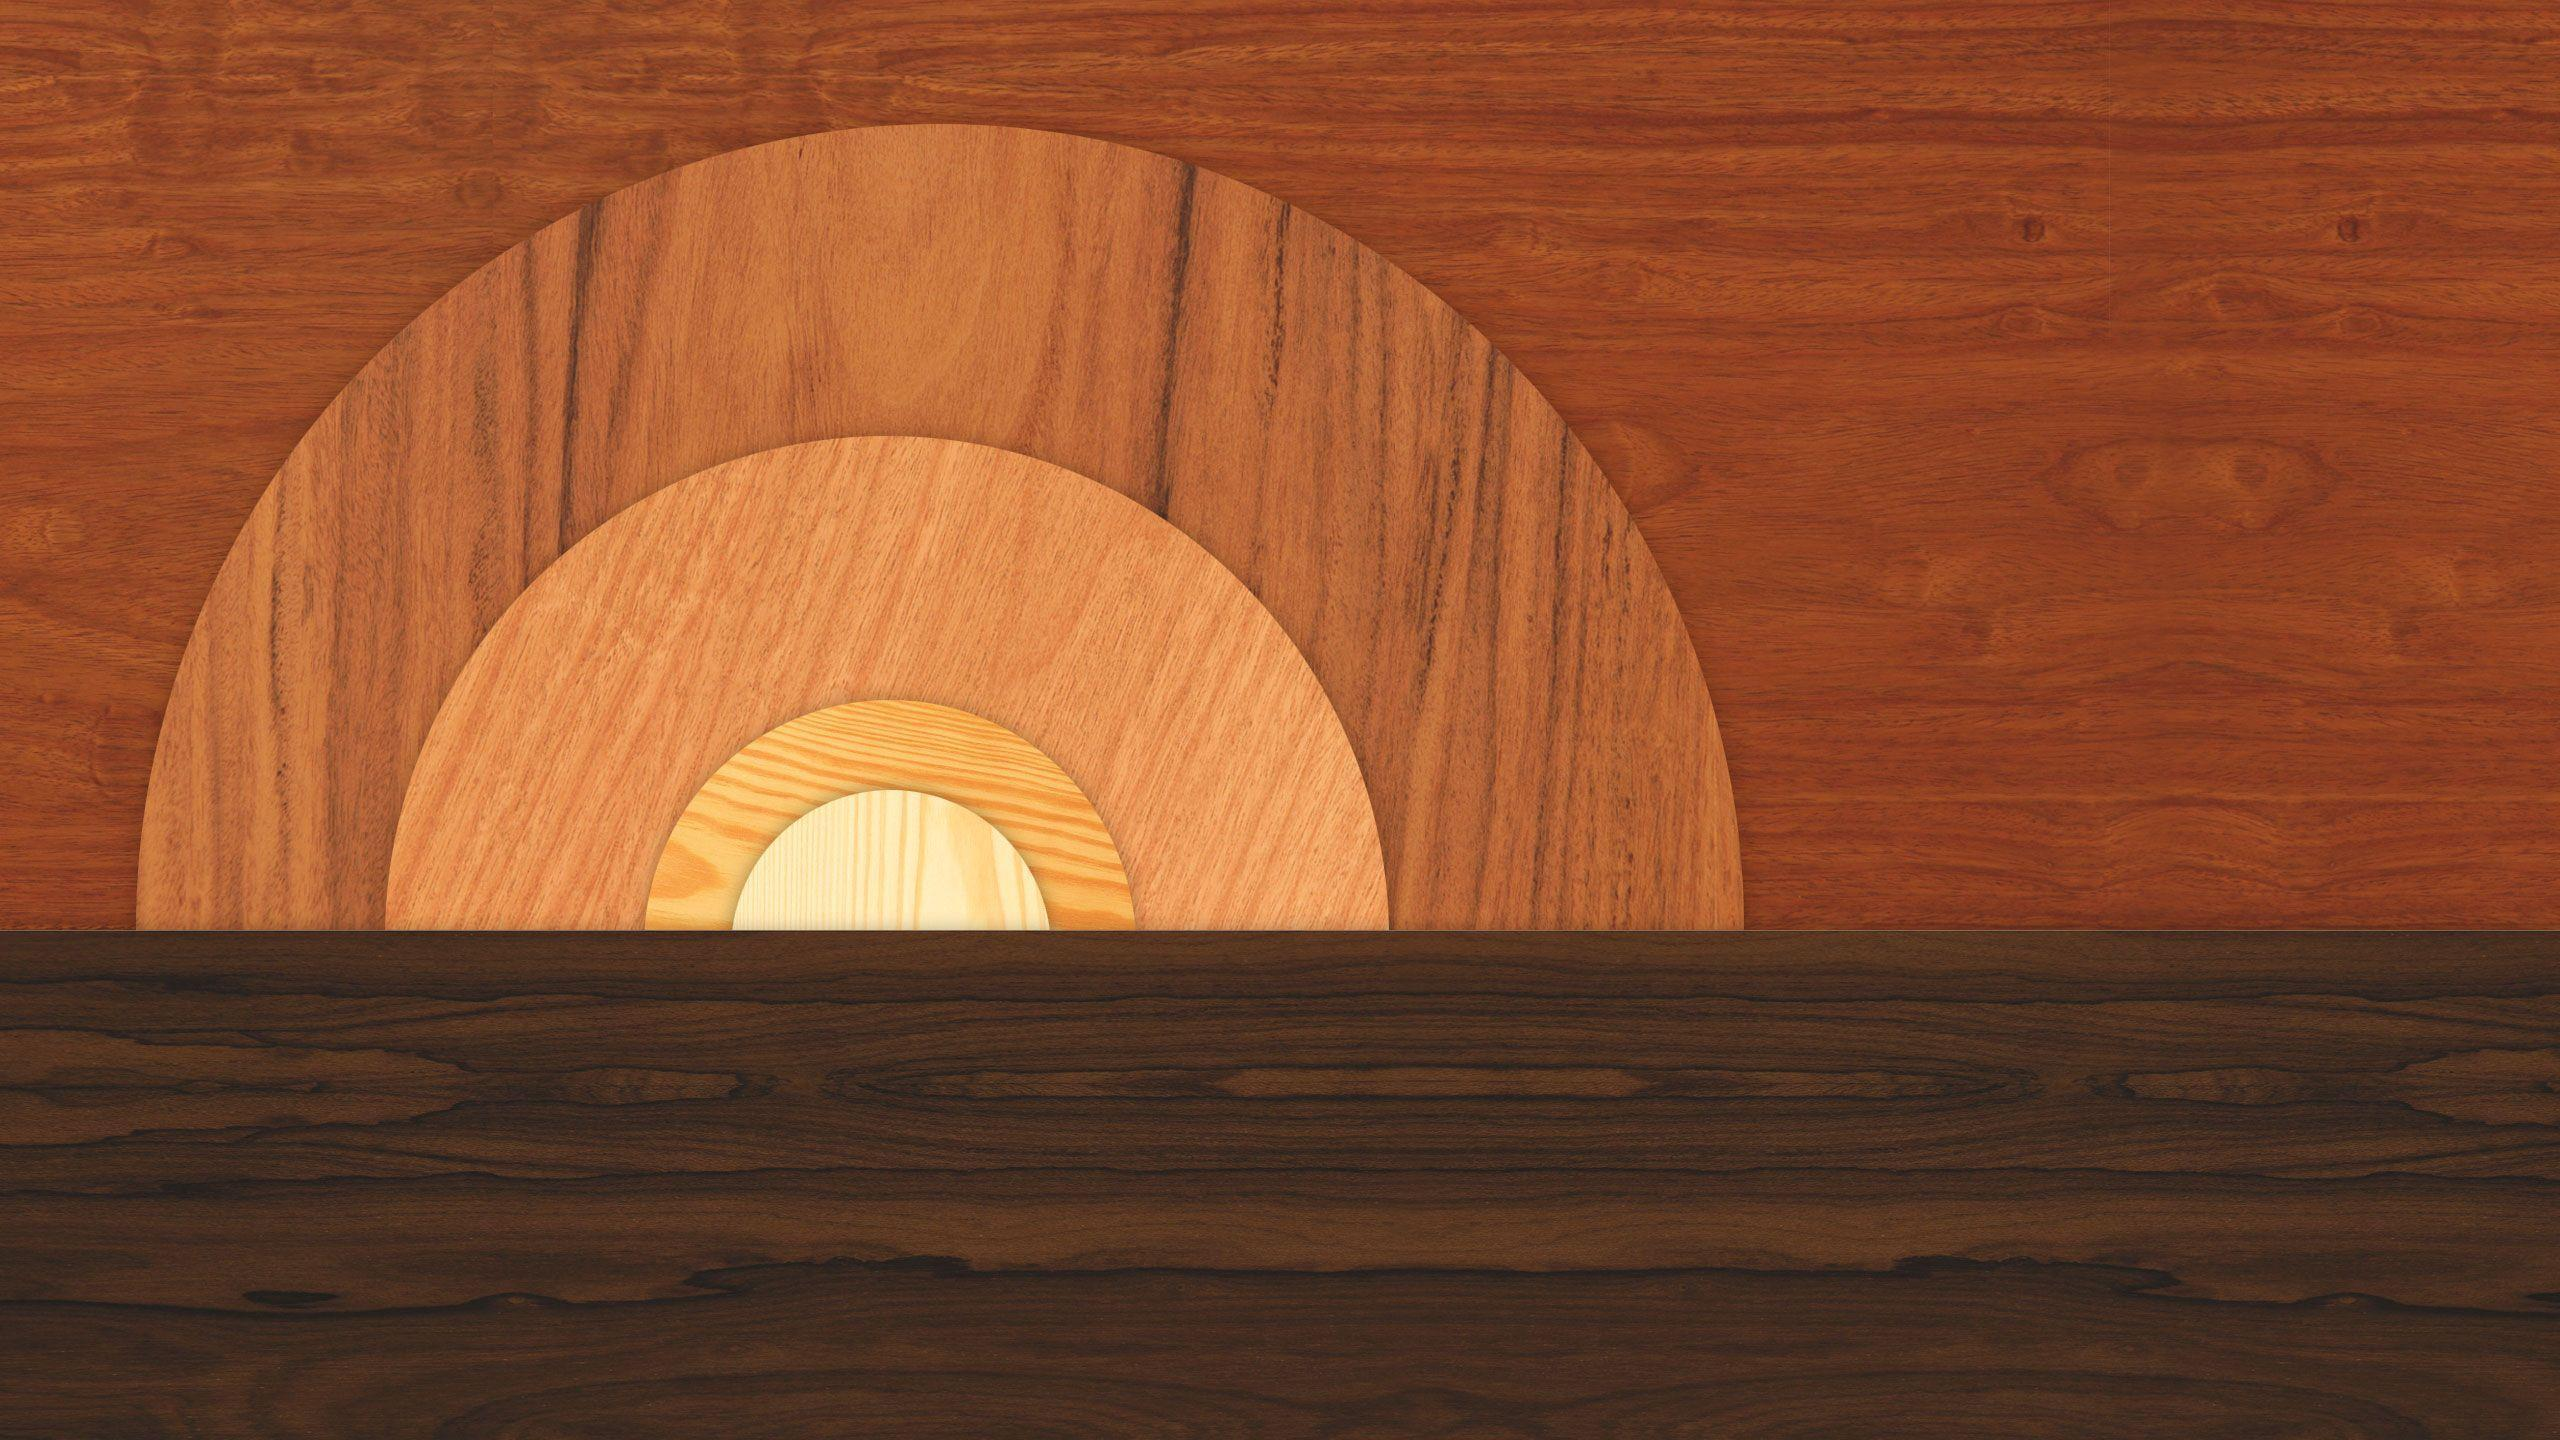 Give Your Desktop A Wooden Finish With These Wallpapers